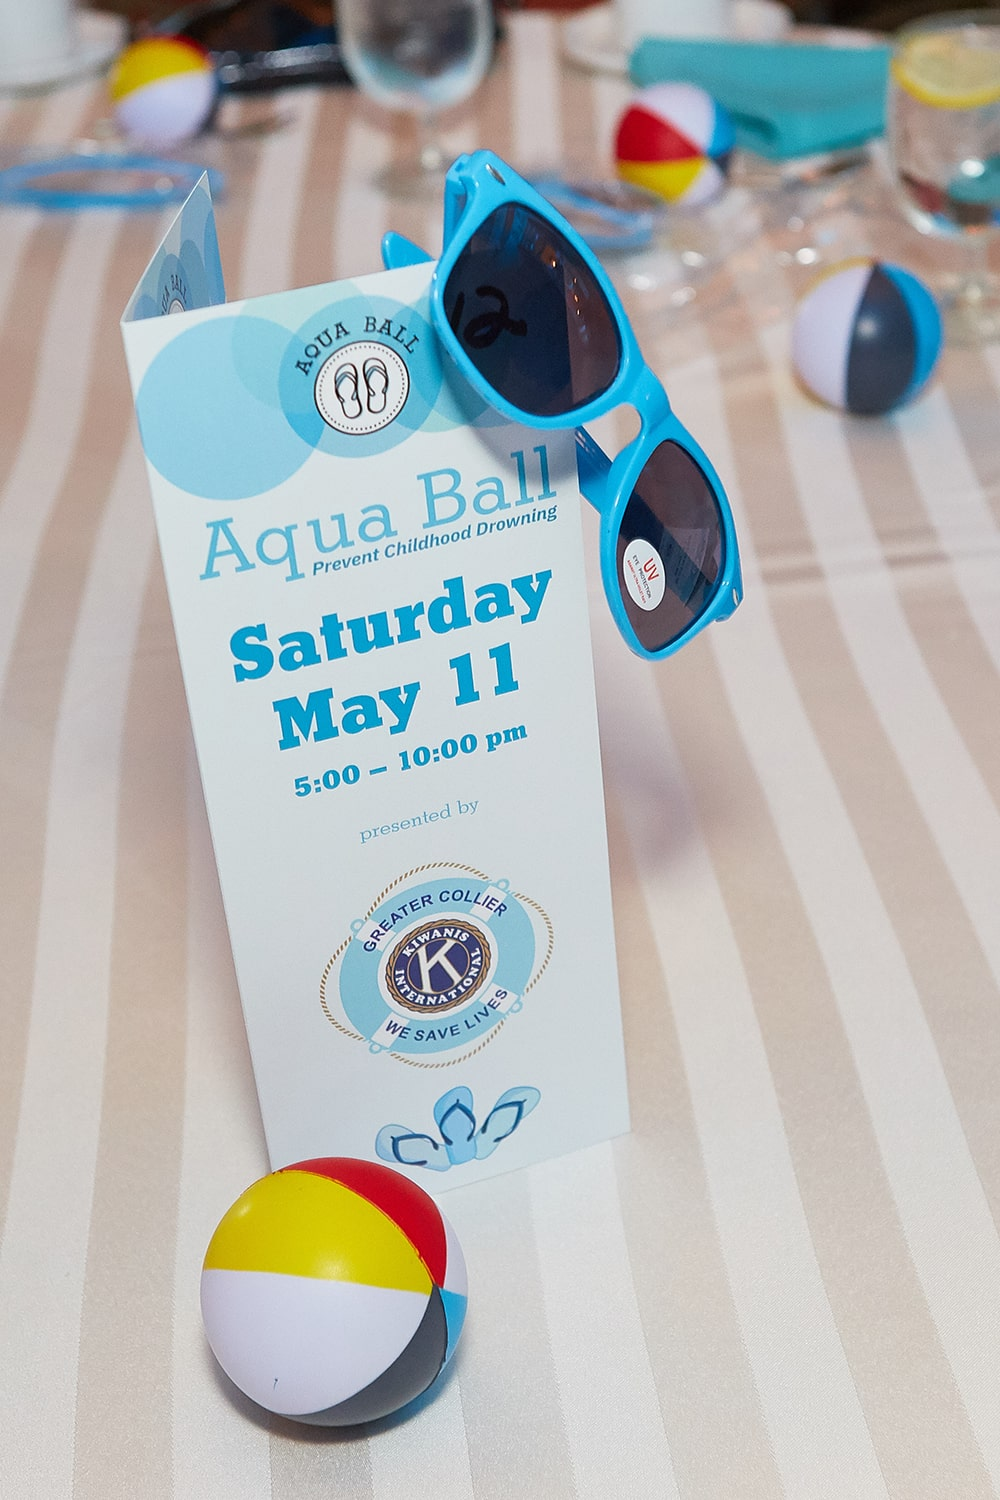 WLW_9168_Aqua Ball FLDPF Florida Drowning Prevention Foundation